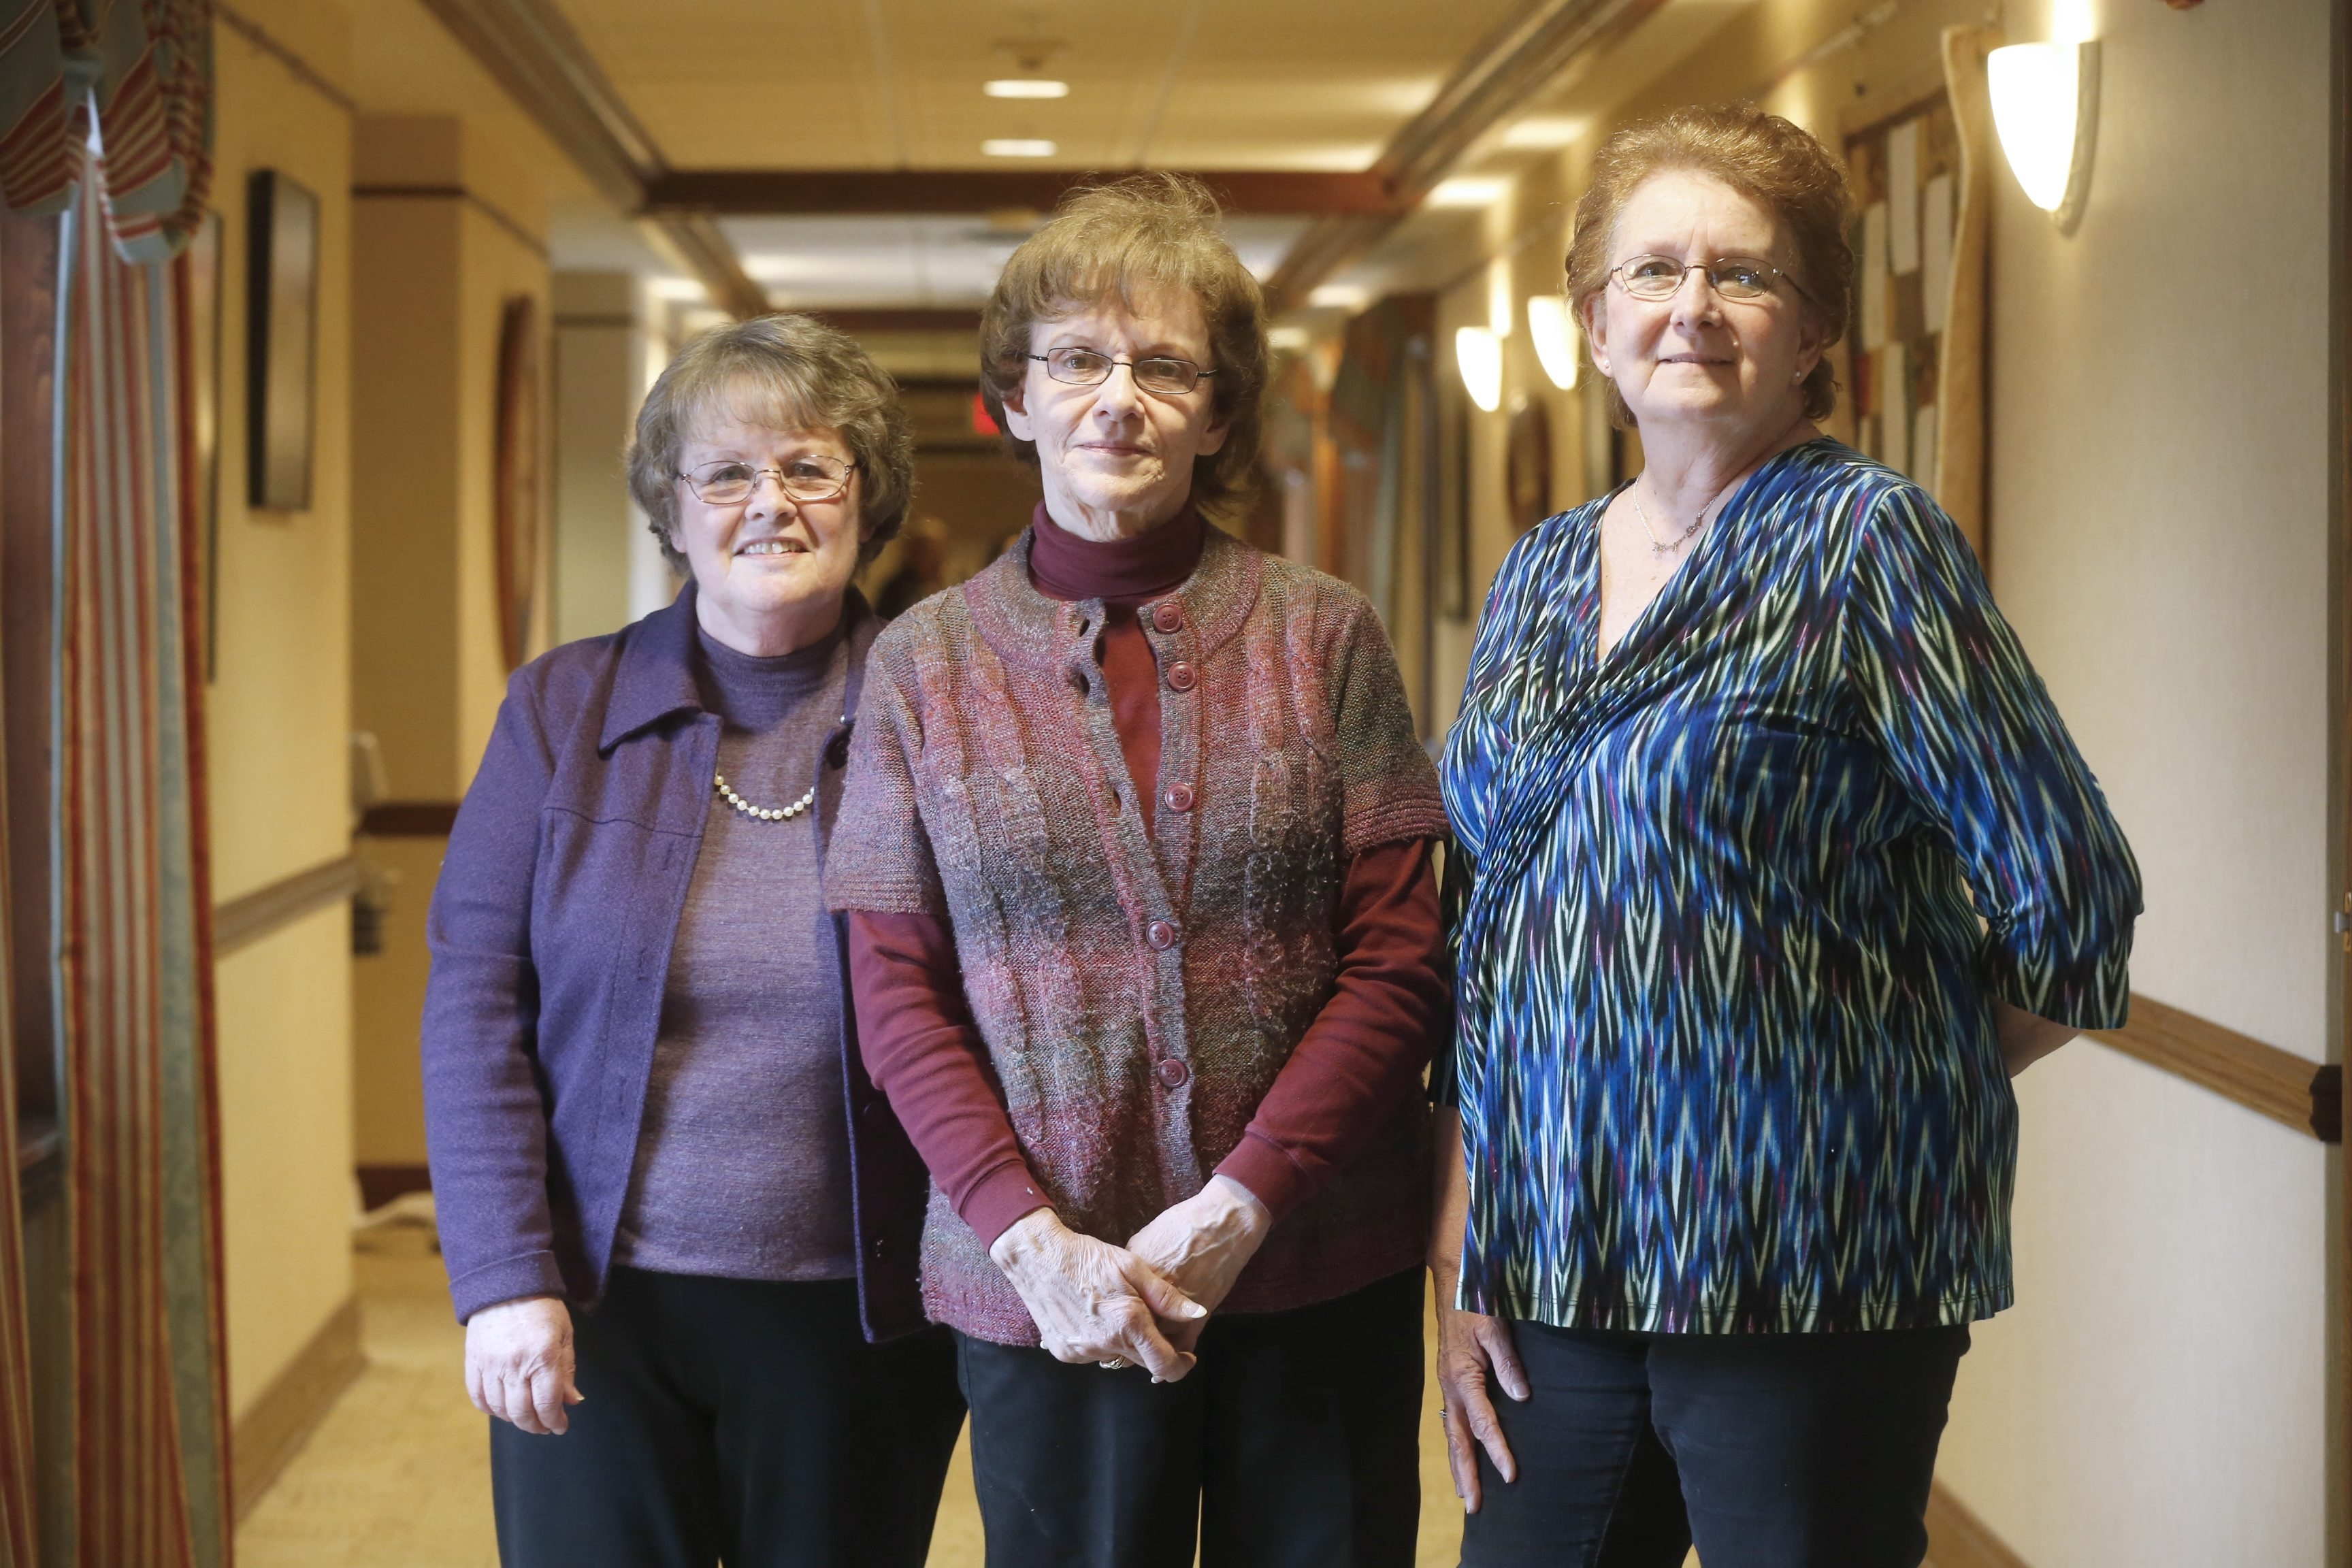 Niagara Hospice volunteers, from right, Bernadette Ford, Barbara Reed and Julie Goldbach at the Hospice House, in Lockport. Hospice will hold spring training for new volunteers from 5 to 9 p.m. April 26.